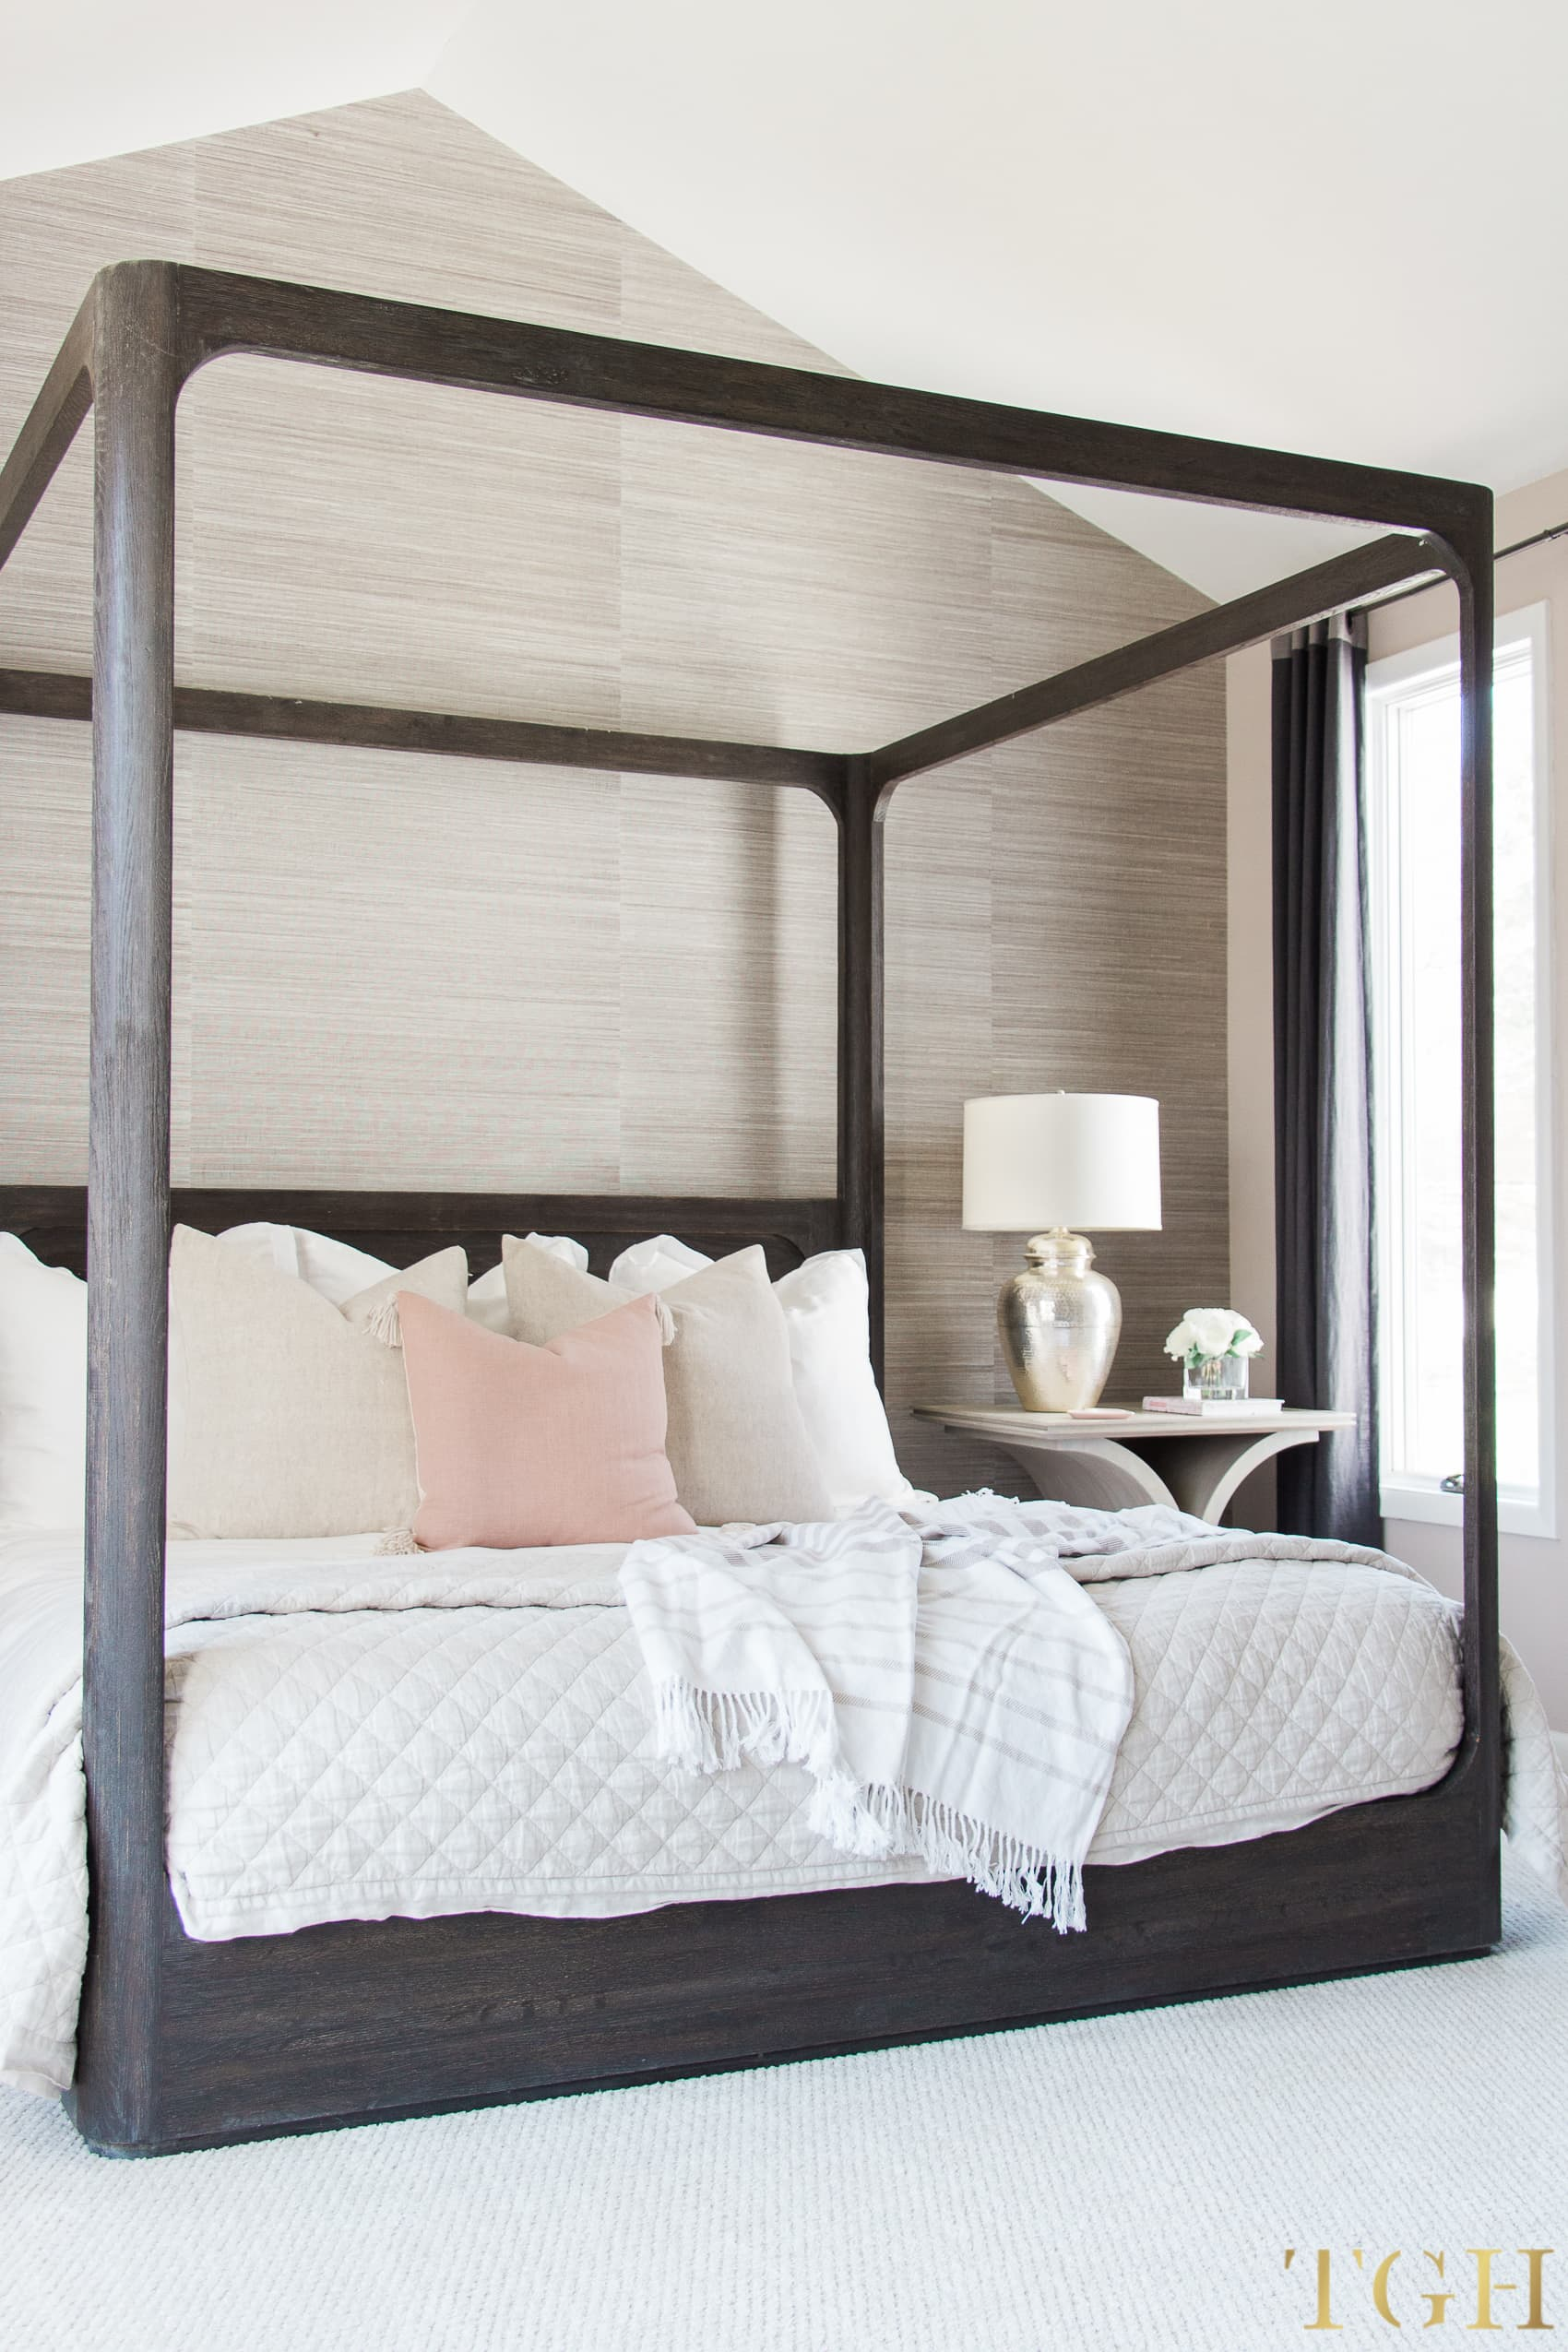 Decorating Our Master Bedroom With Vaulted Ceilings The Greenspring Home